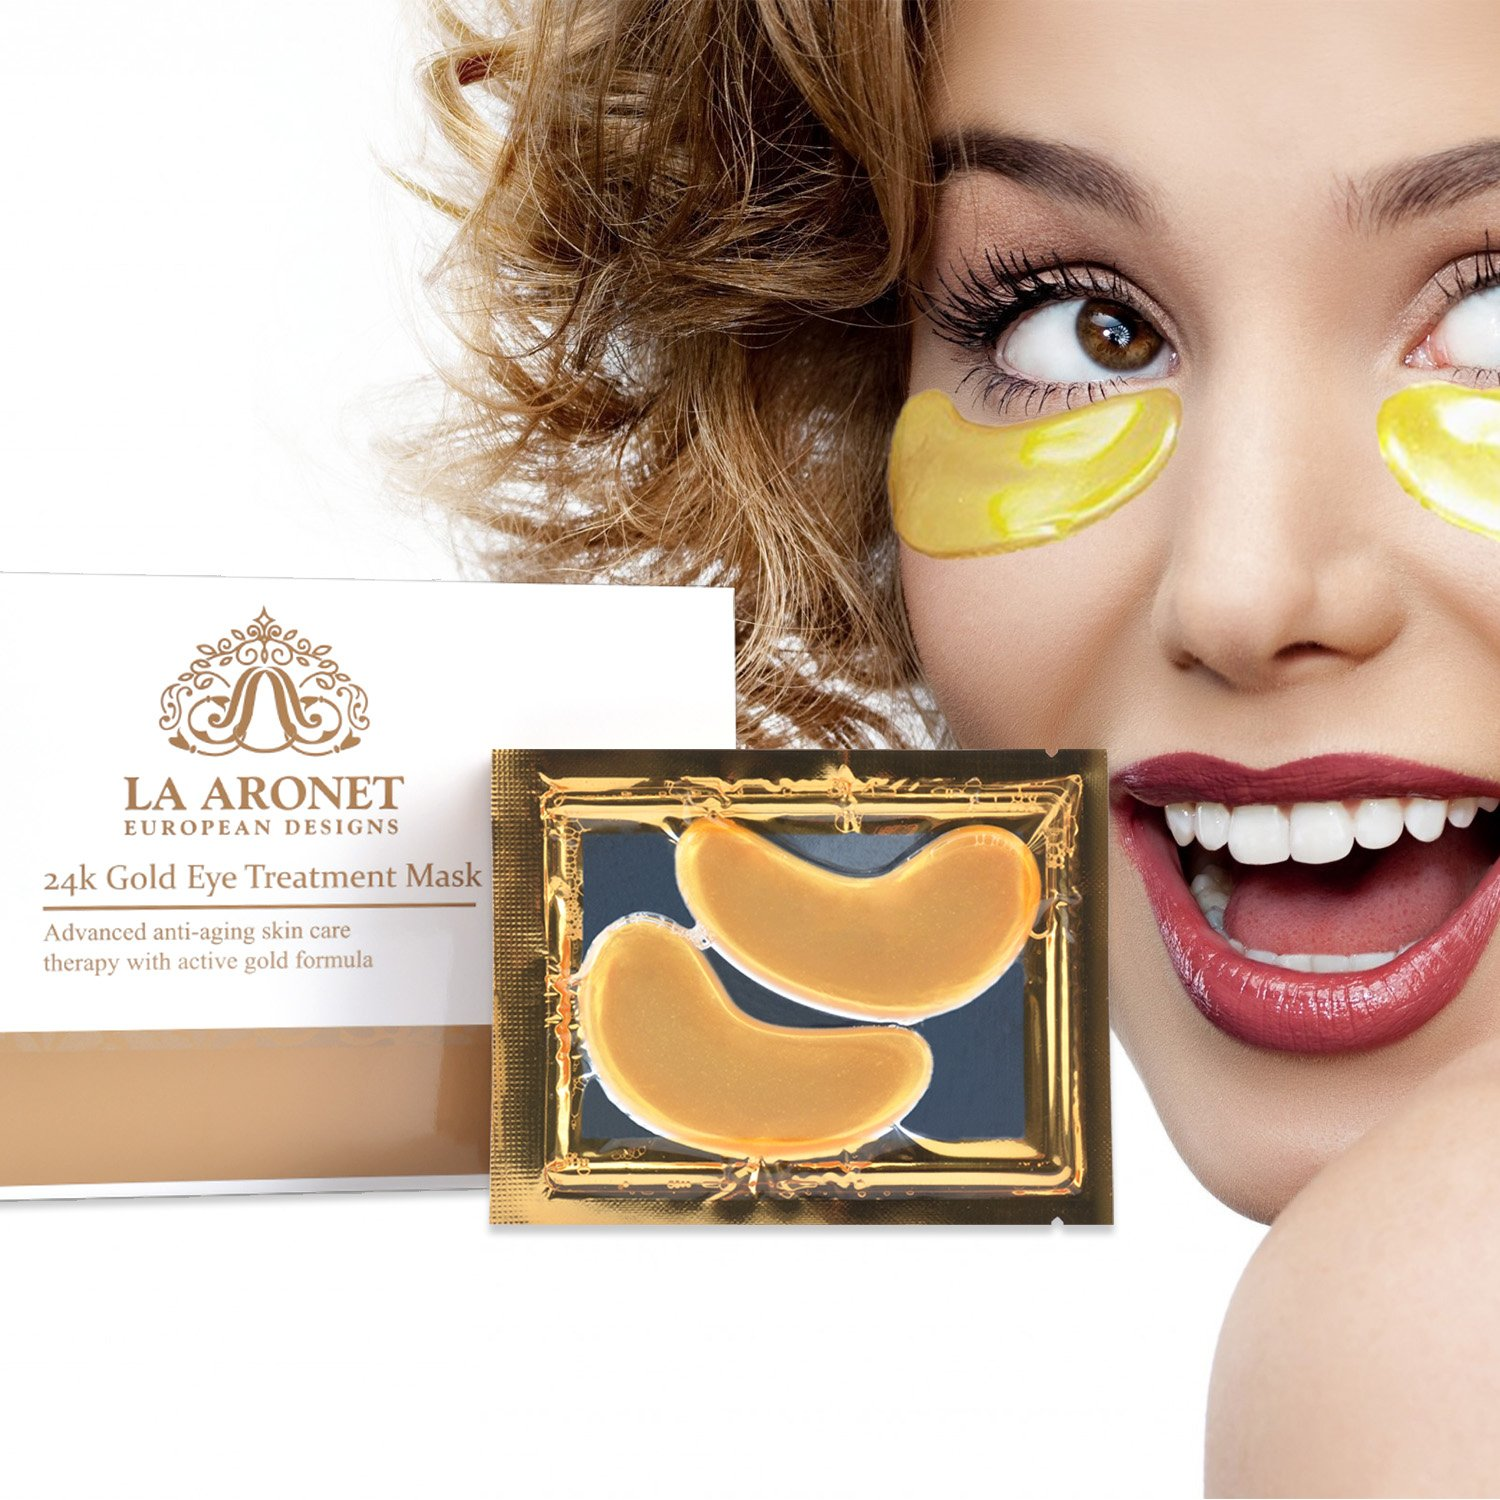 LA ARONET 24K Gold Eye Treatment Masks - (Pack of 20 Pairs) with Anti-Aging Wrinkle Reduction Collagen and Nutrients to Reduce Dark Circles, Bags, and Eye Puffiness, 5 EXTRA BONUS PAIRS included by LA ARONET (Image #3)